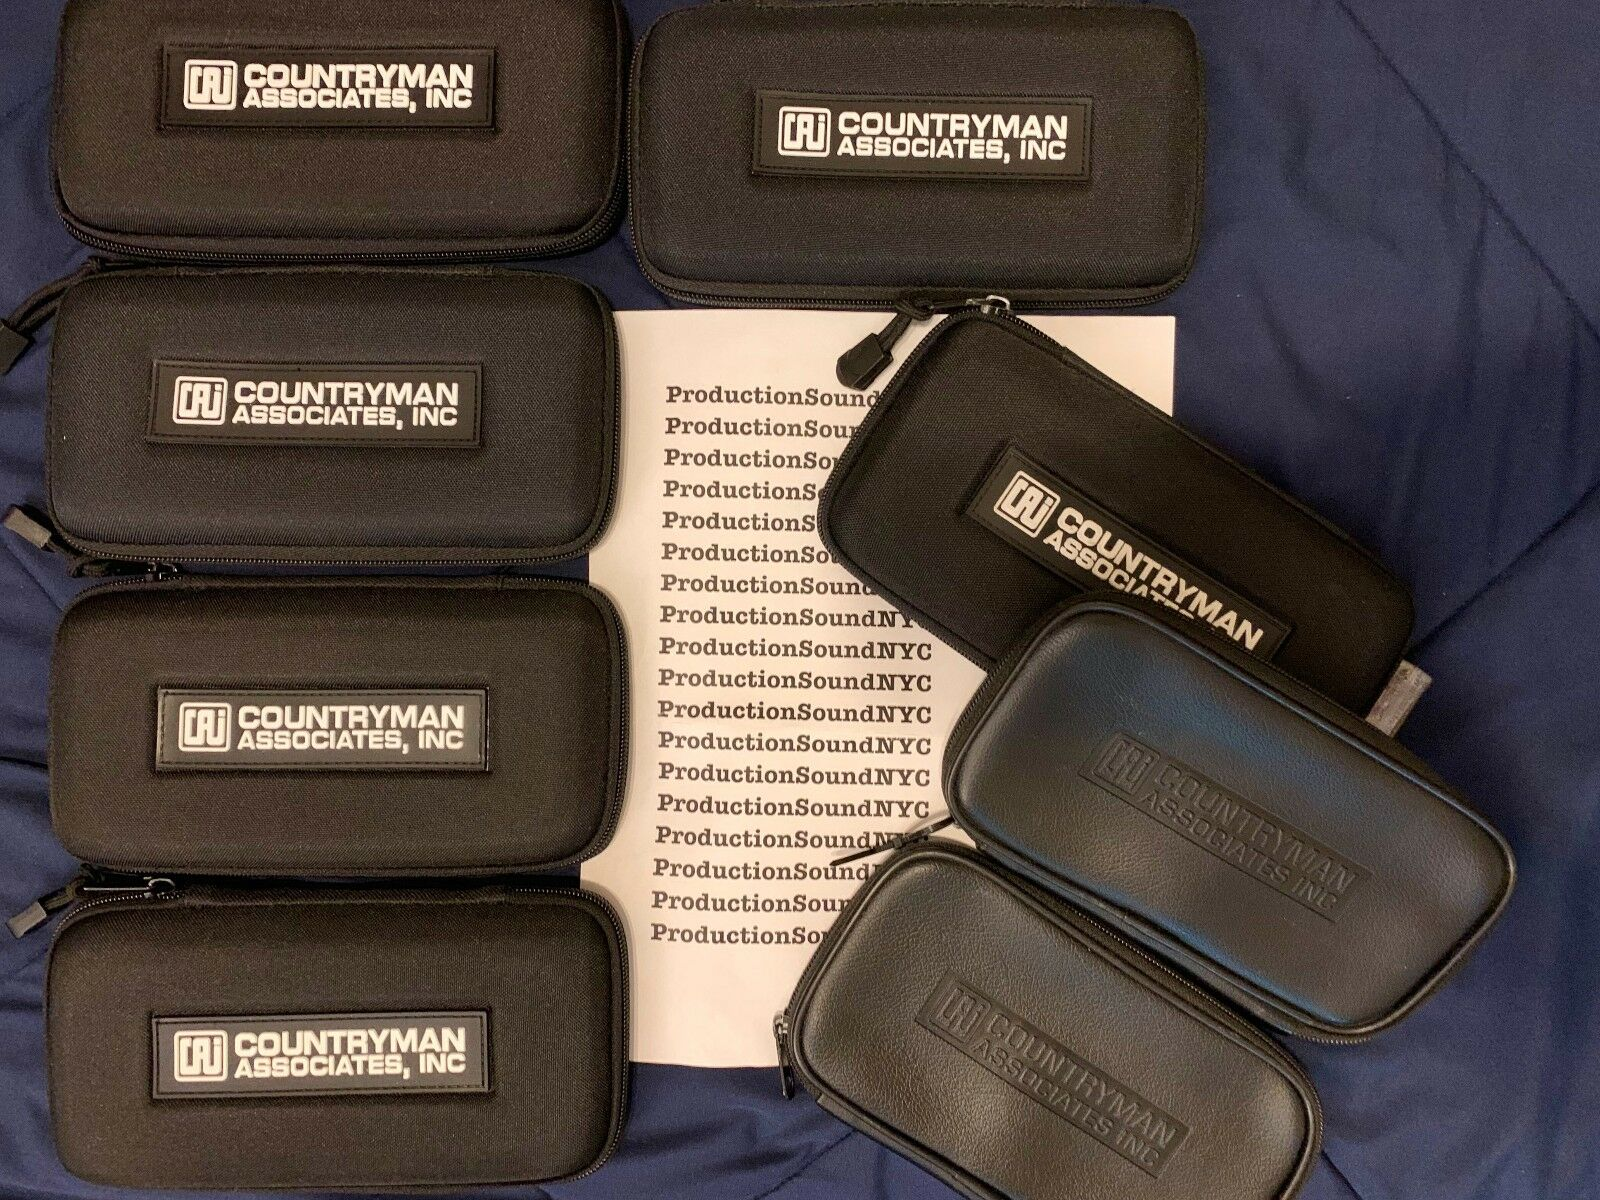 8x Original Countryman B6 B3 Lavalier Microphone CASES ONLY  8 total